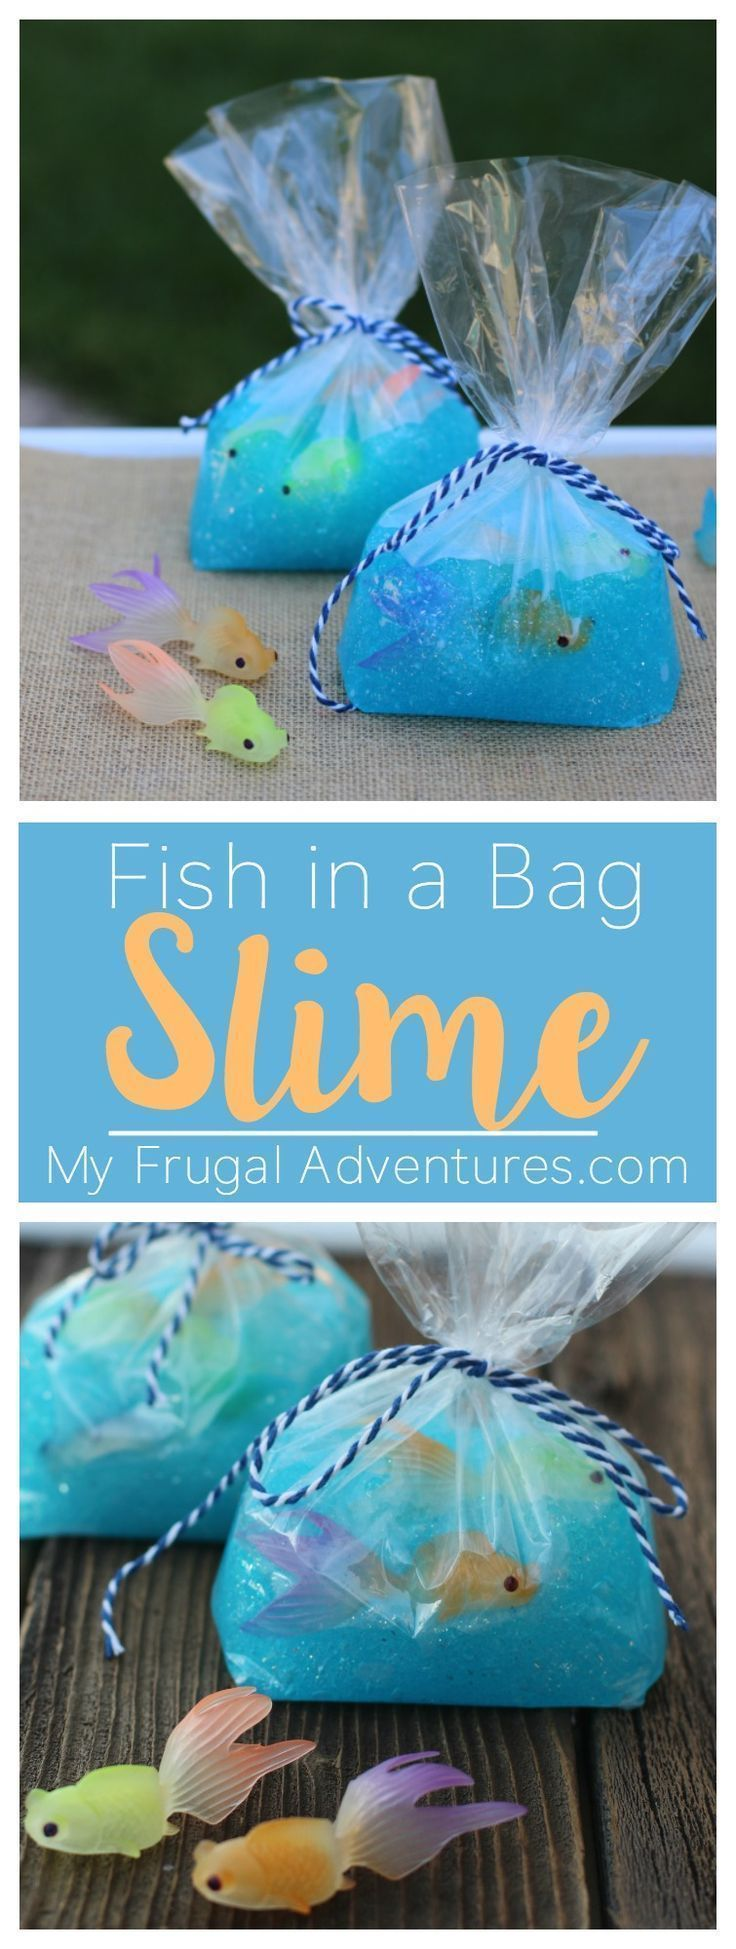 Such a fun children's craft! Fish in a Bag slime. Perfect for summer afternoons or rainy days.: